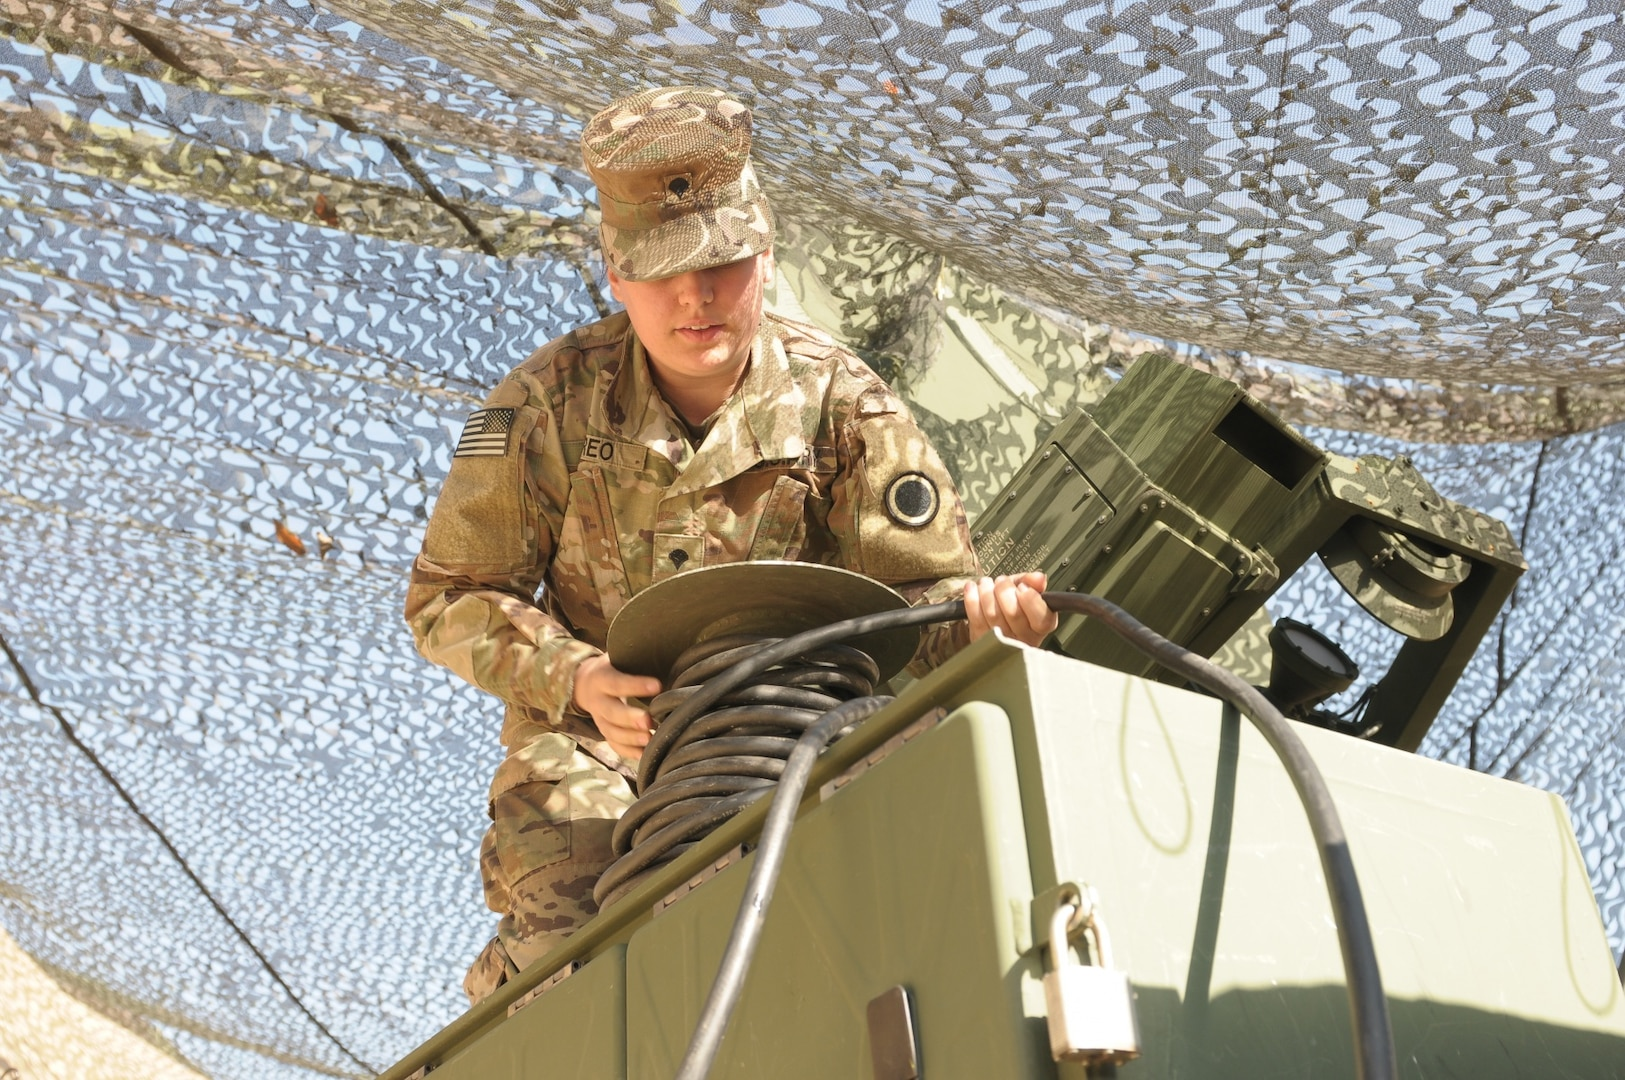 I Corps signal and communications team enables the mission